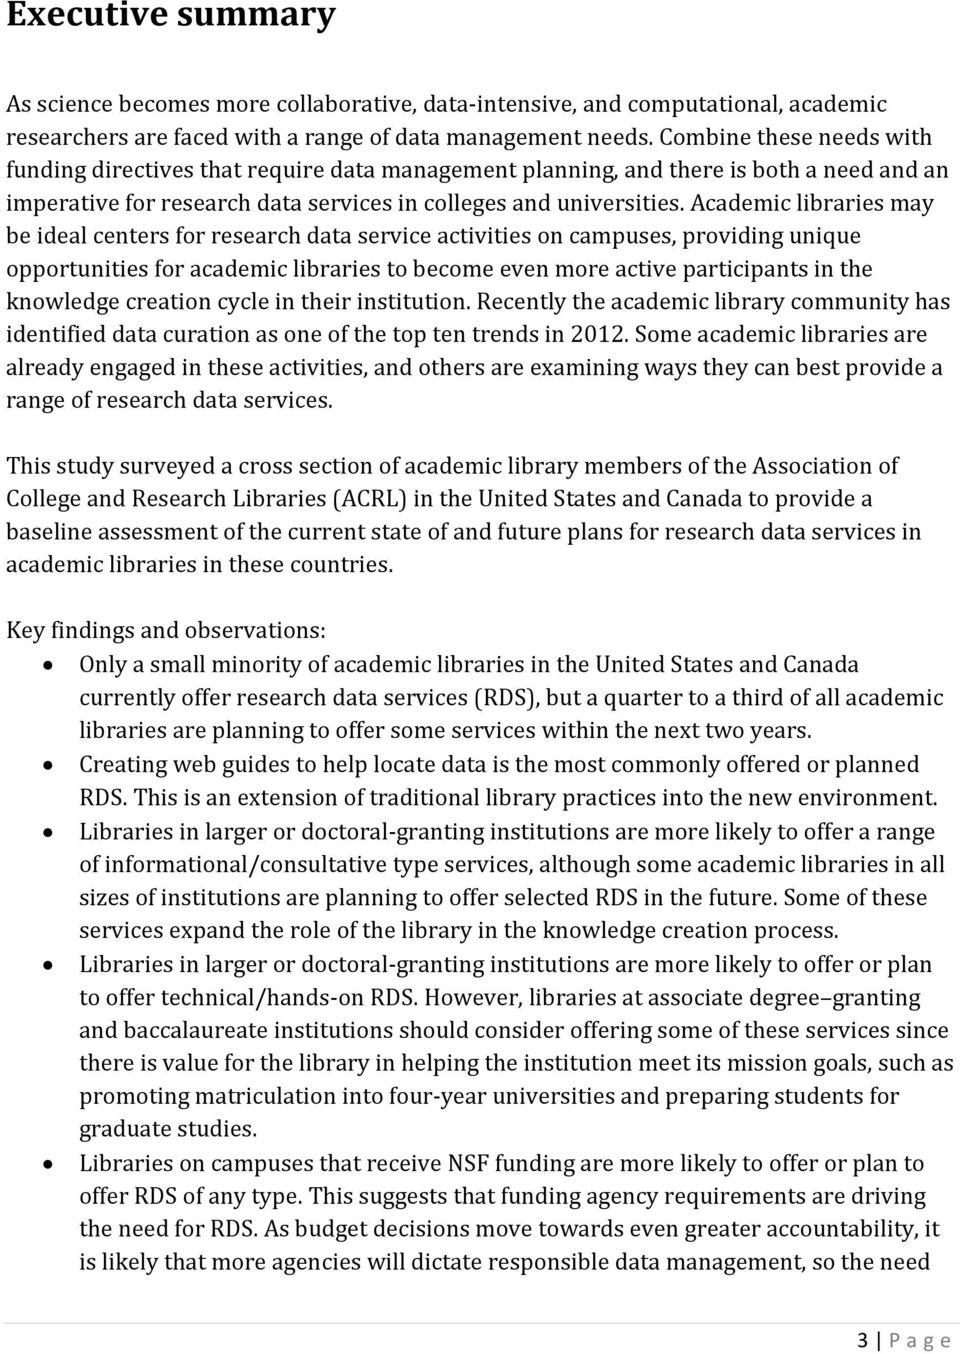 Academic libraries may be ideal centers for research data service activities on campuses, providing unique opportunities for academic libraries to become even more active participants in the